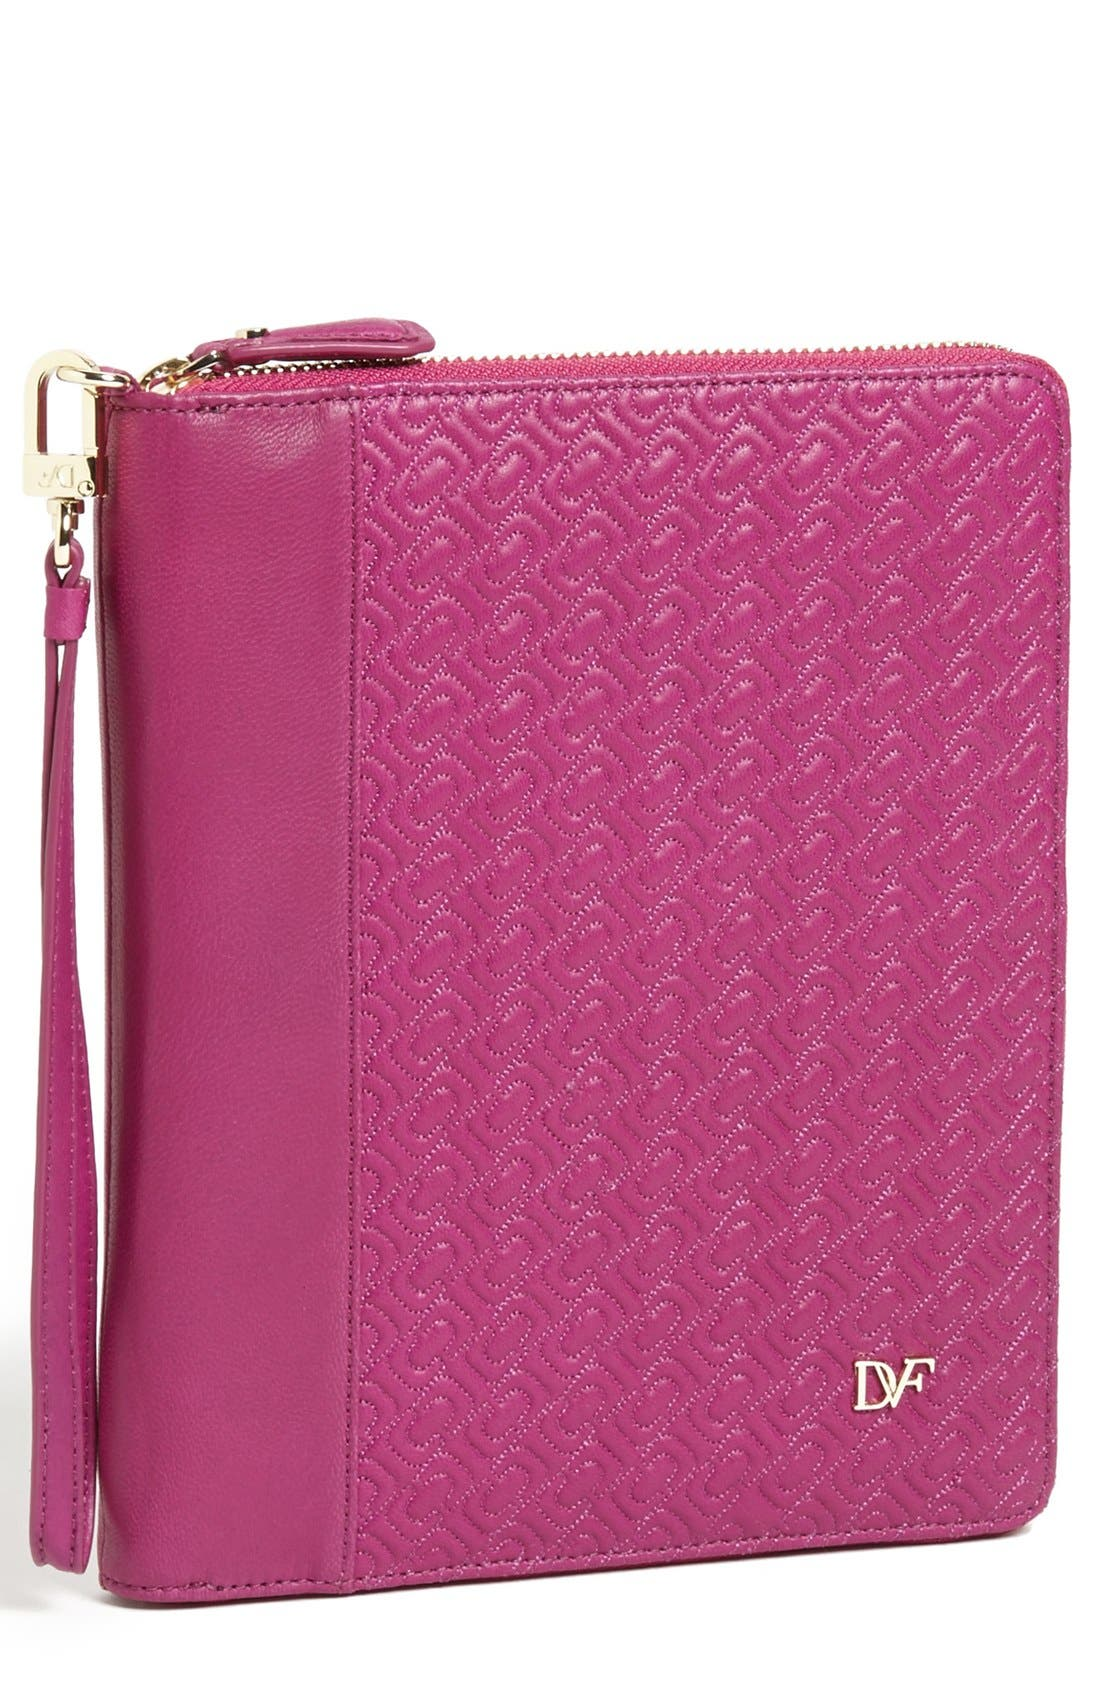 Main Image - Diane von Furstenberg 'Chain Link' Quilted iPad Mini Case